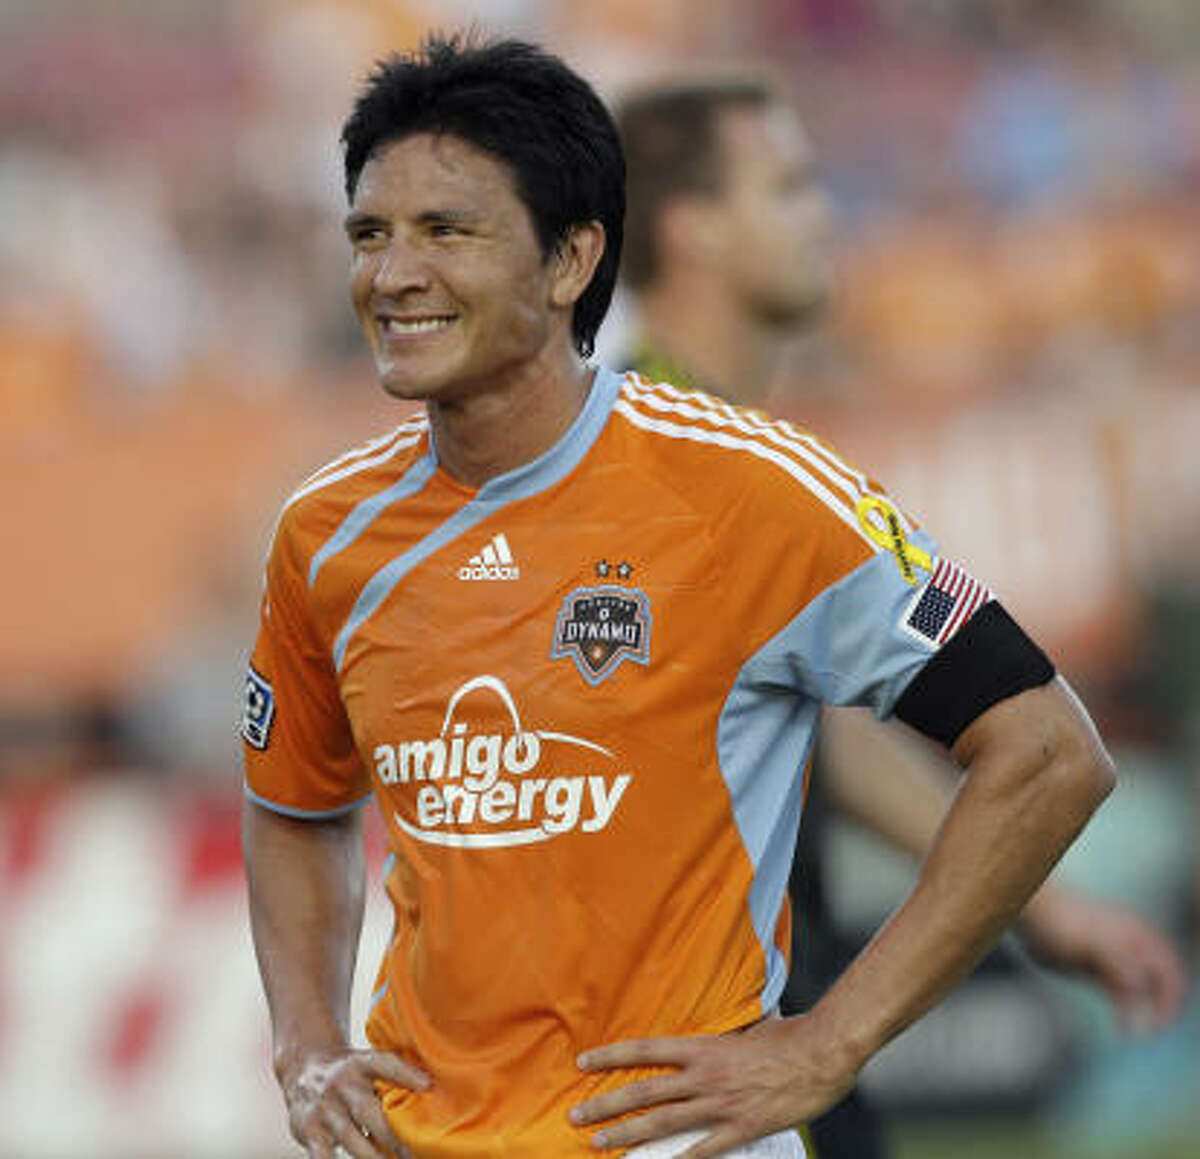 July 10: Dynamo 0, Crew 0 Dynamo forward Brian Ching smiles after missing a goal at close range on a putback in the second half against the Columbus Crew on Saturday at Robertson Stadium.